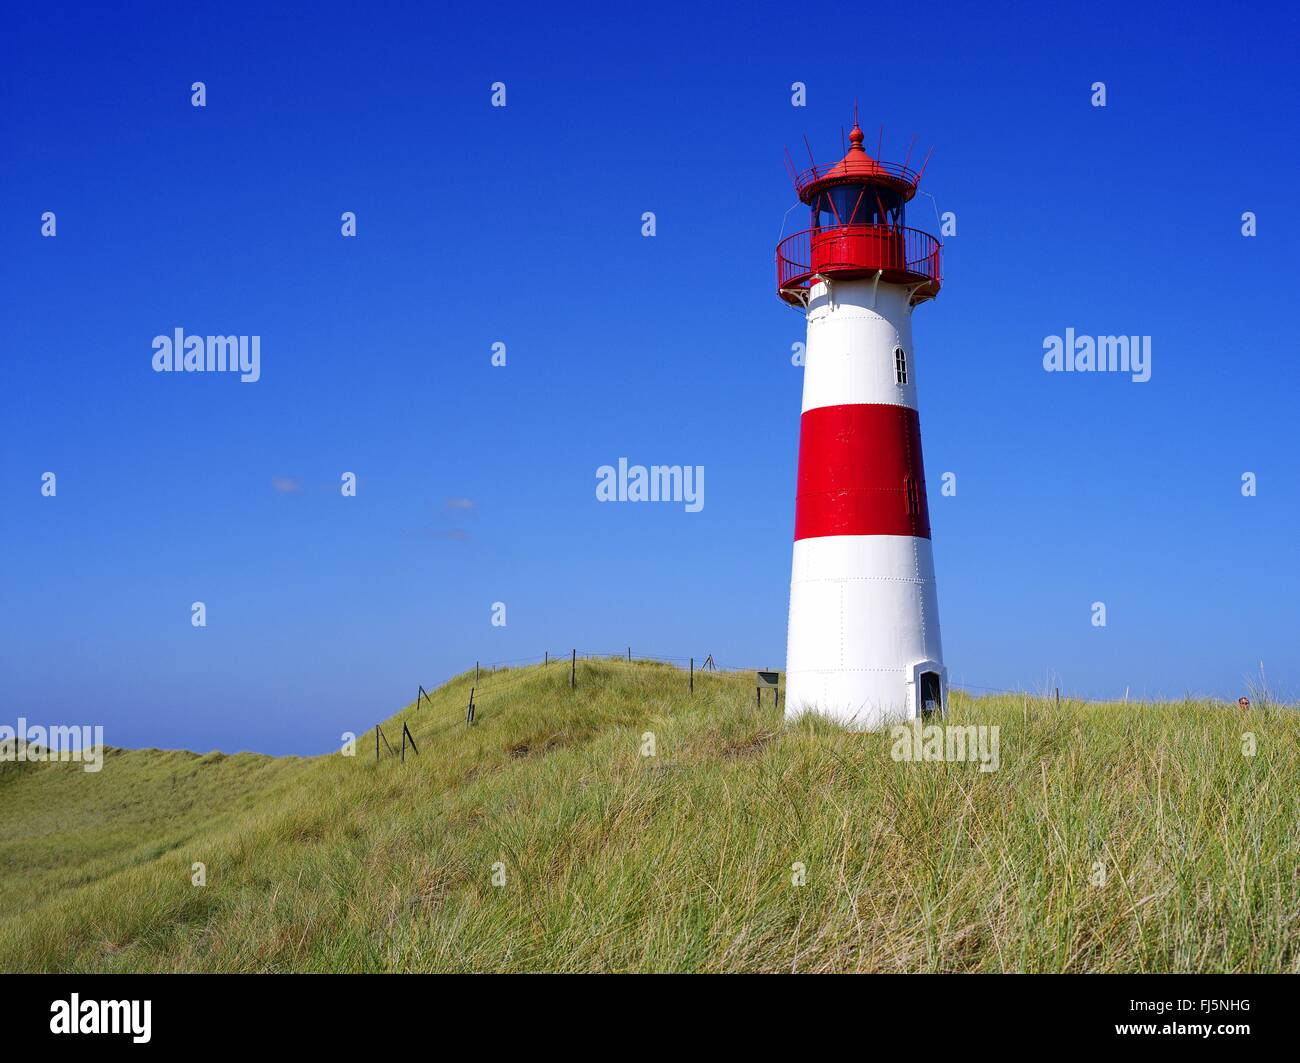 lighthouse of List Ost, Germany, Schleswig-Holstein, Sylt, List - Stock Image